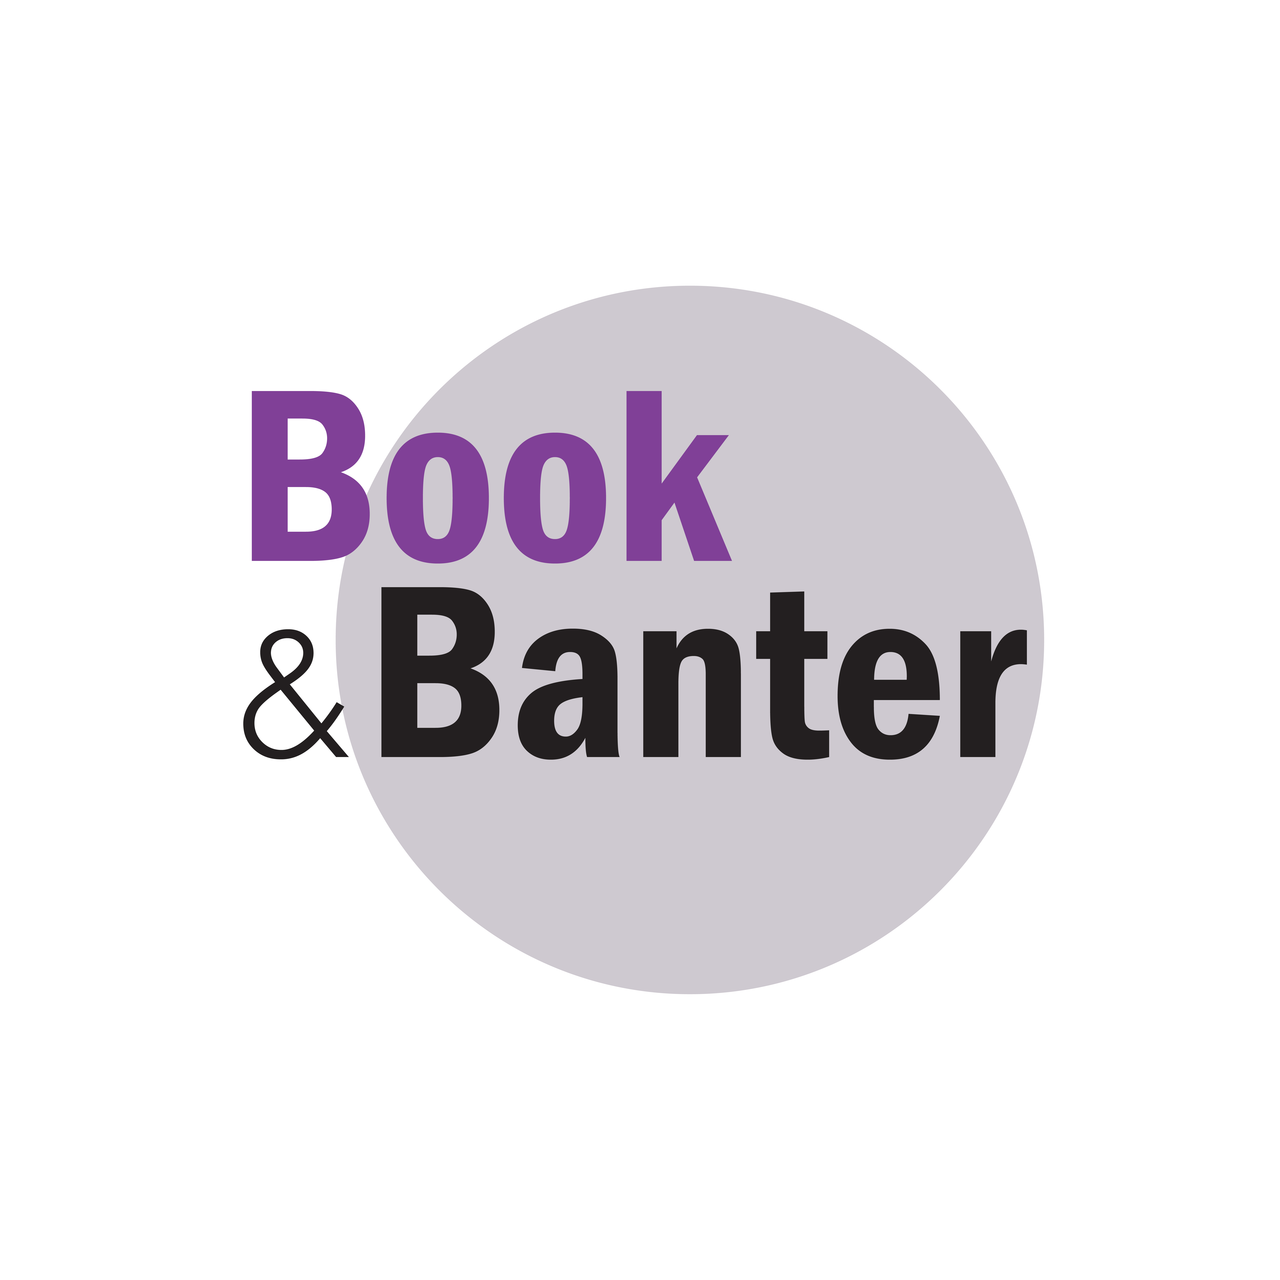 Book and Banter